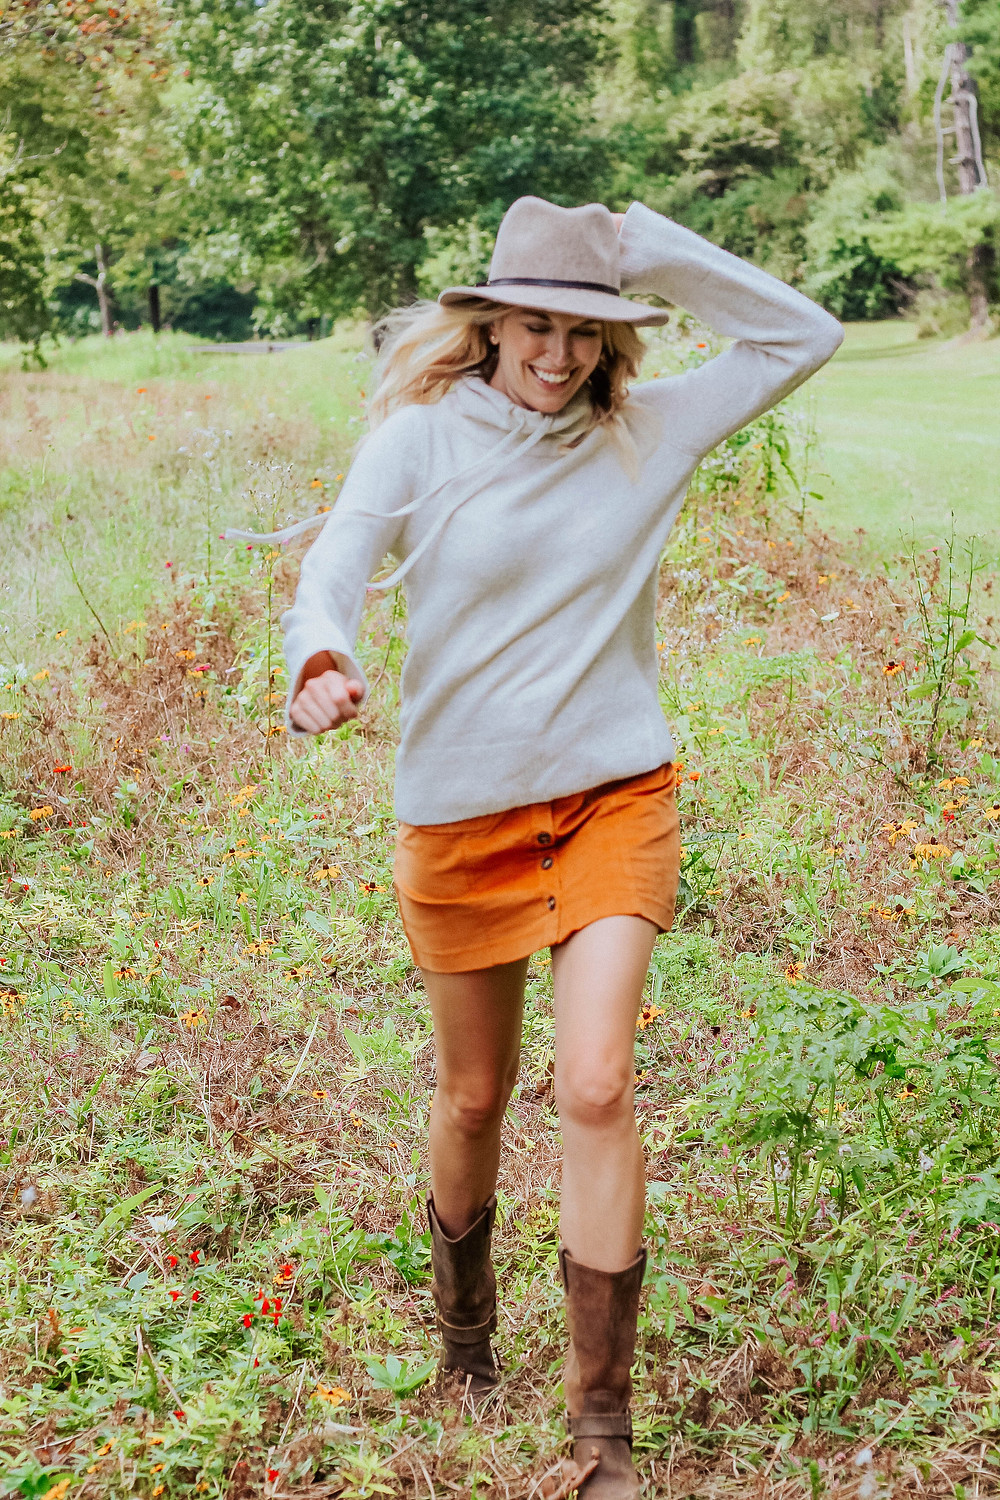 Brooke (The Tony Townie) wearing corduroy skirt and sweater runs through field of wildflowers.